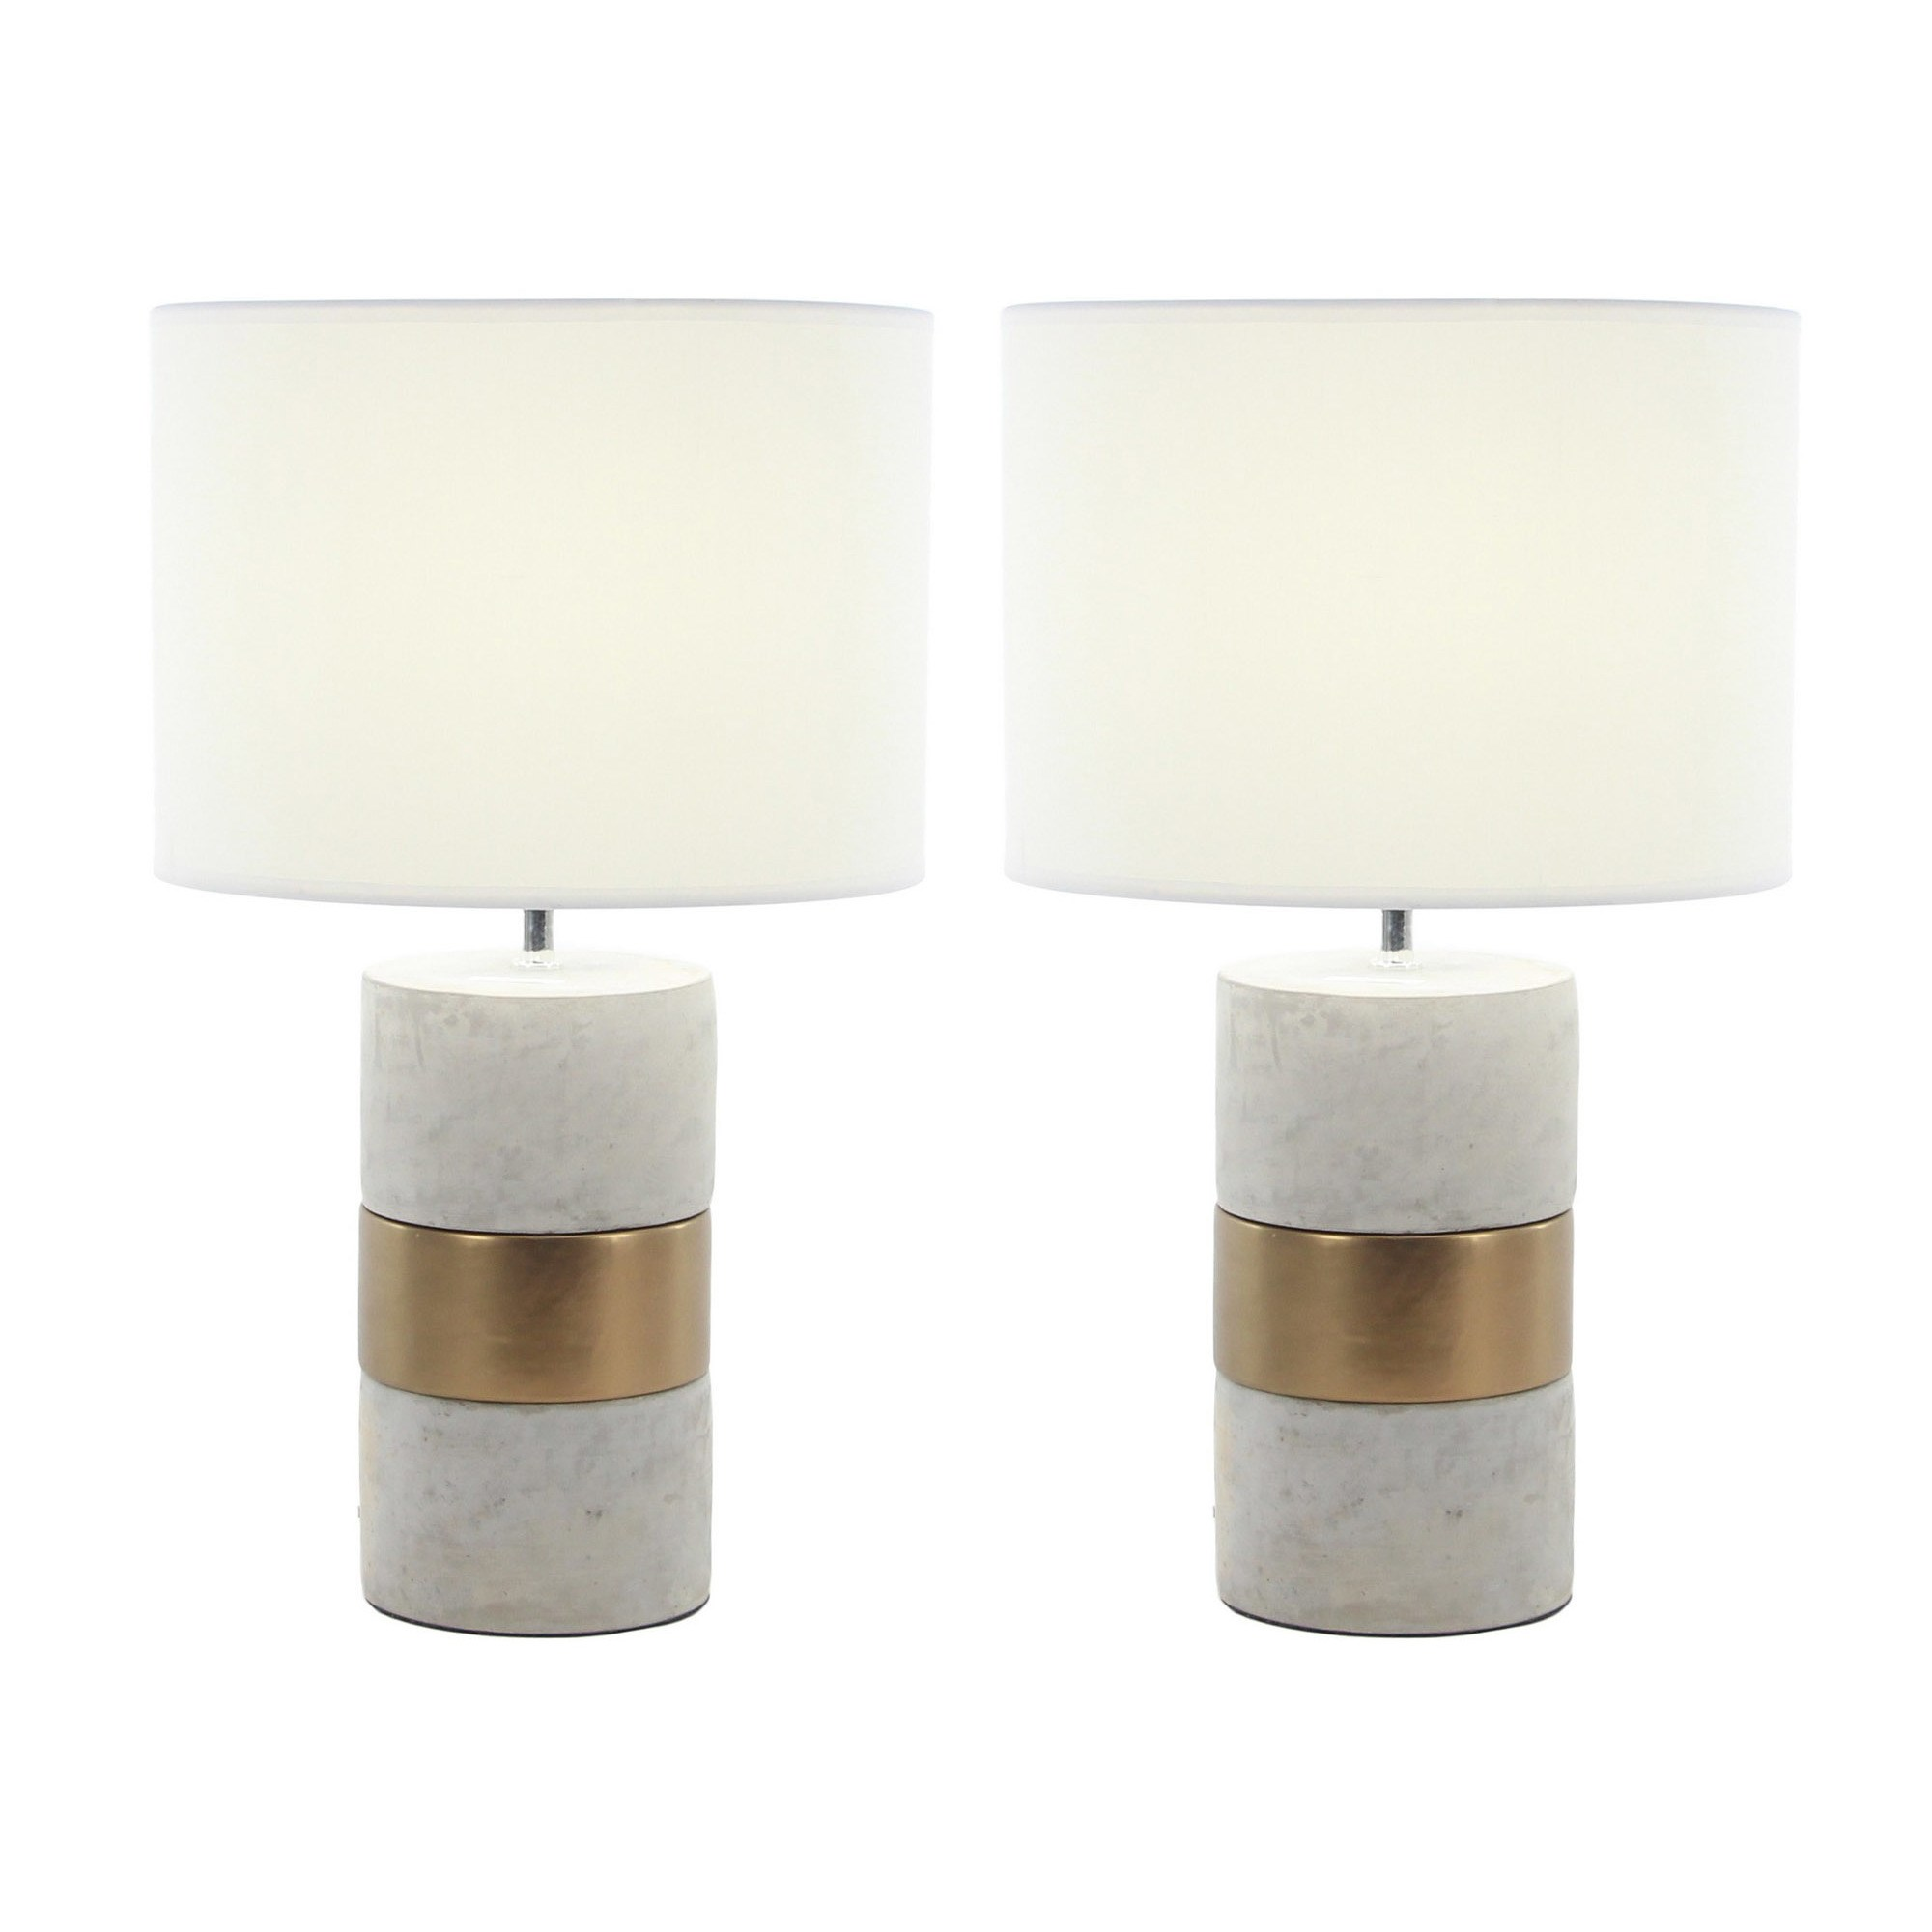 urban designs elegant concrete with gold accent inch table lamp set lamps free shipping today west elm chandelier jute rug black bedroom furniture sets battery wall clocks pier